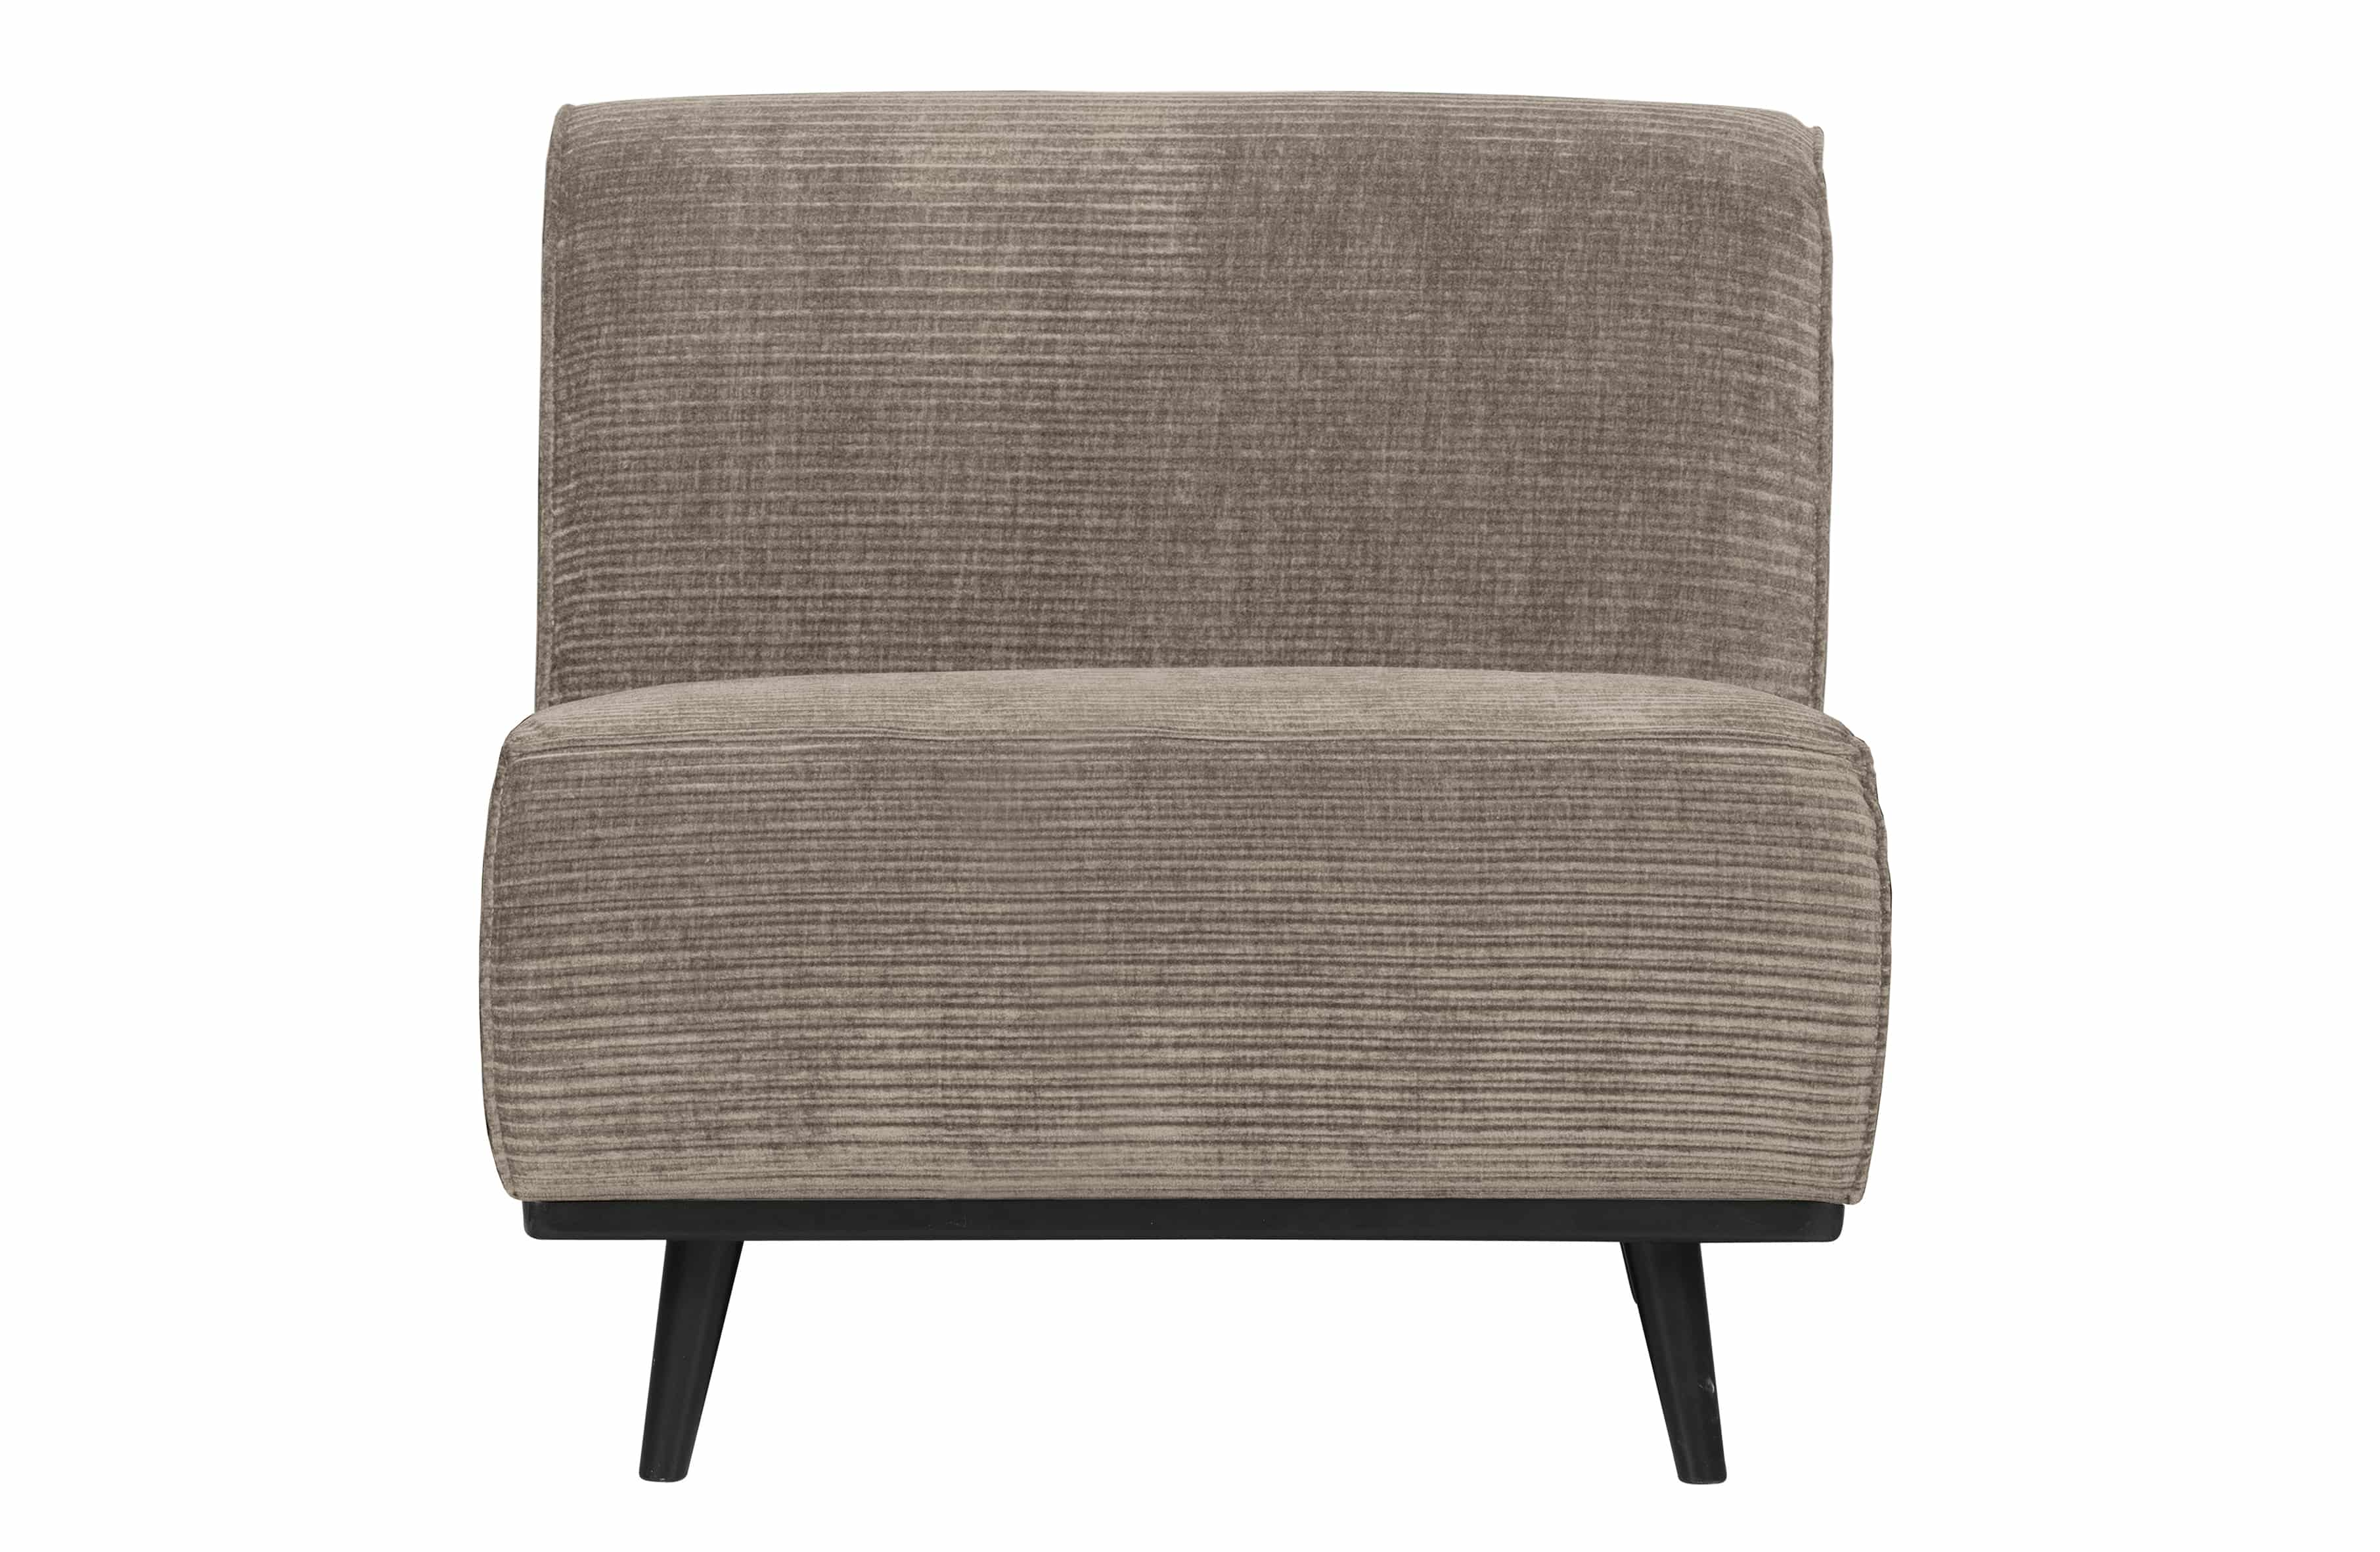 Statement 1-seater Element Flach Rippe Clay